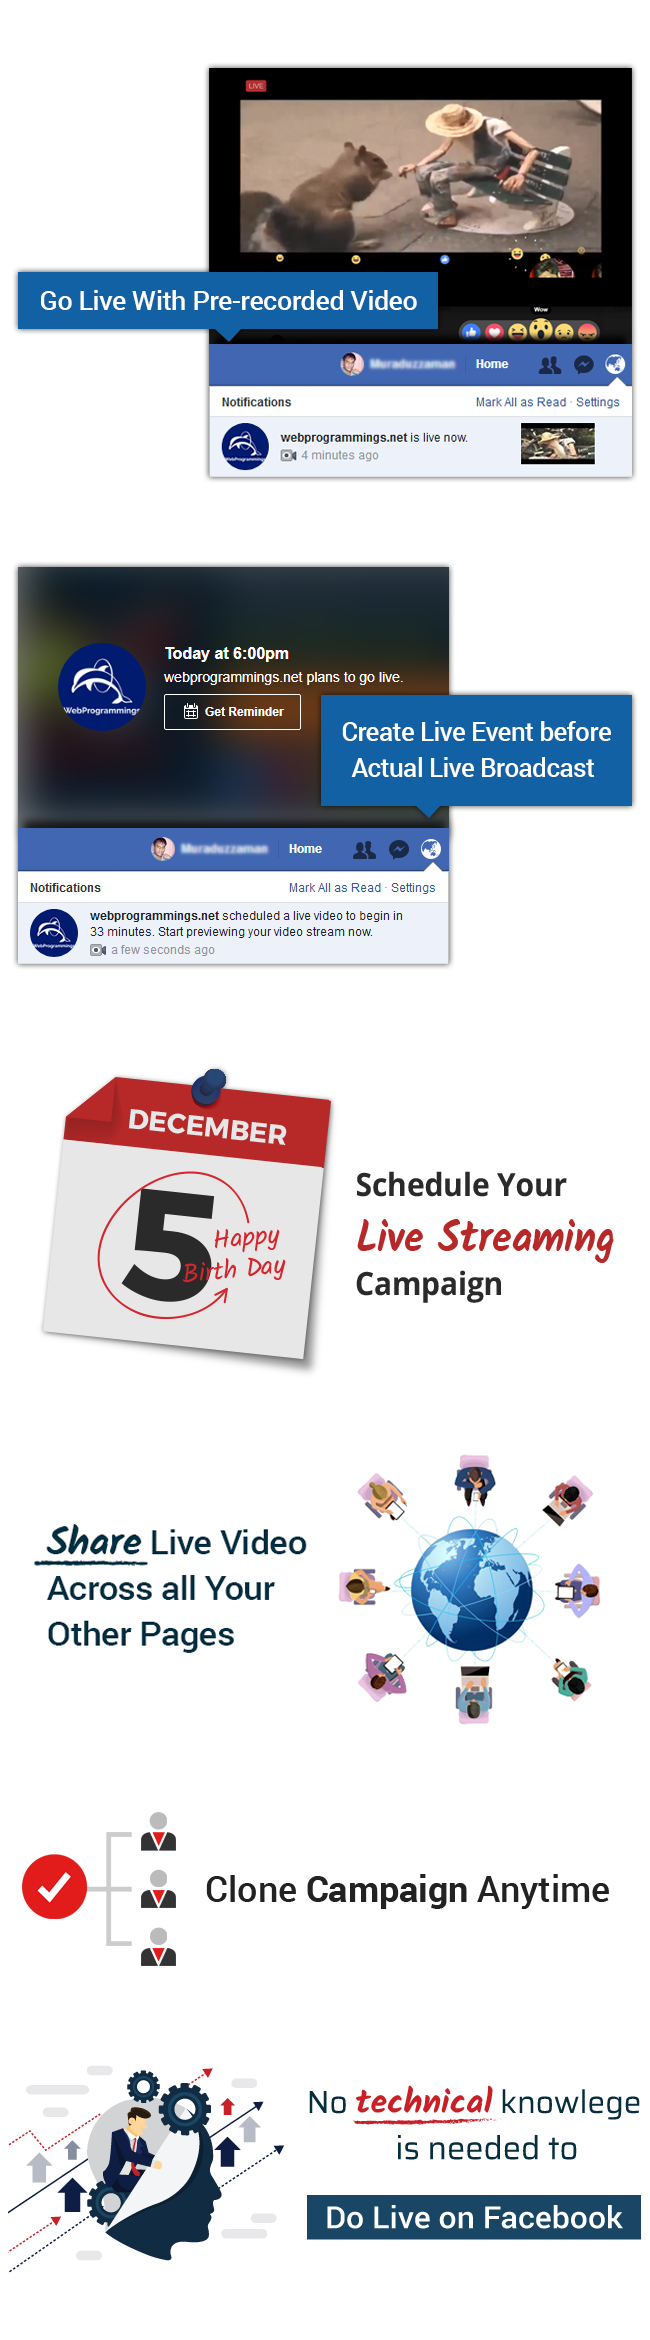 VidCasterLive - A EZ Inboxer Add-on : Facebook Live Streaming With Pre-recorded Video - 9